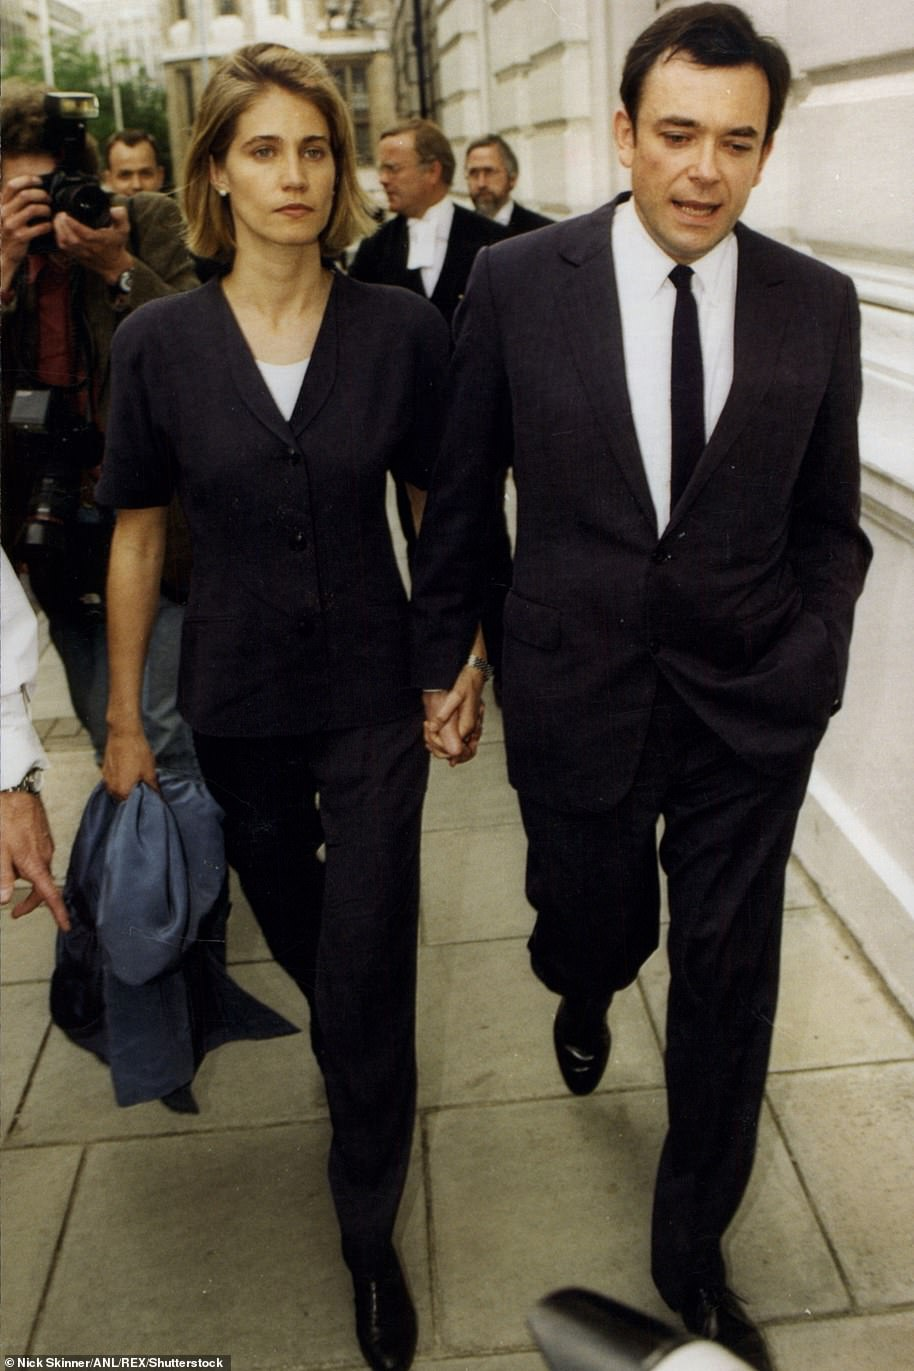 Ian pictured with his wife Laura at court on the first day of his trial, where he and his brother were accused of taking at least £122million worth of pension funds